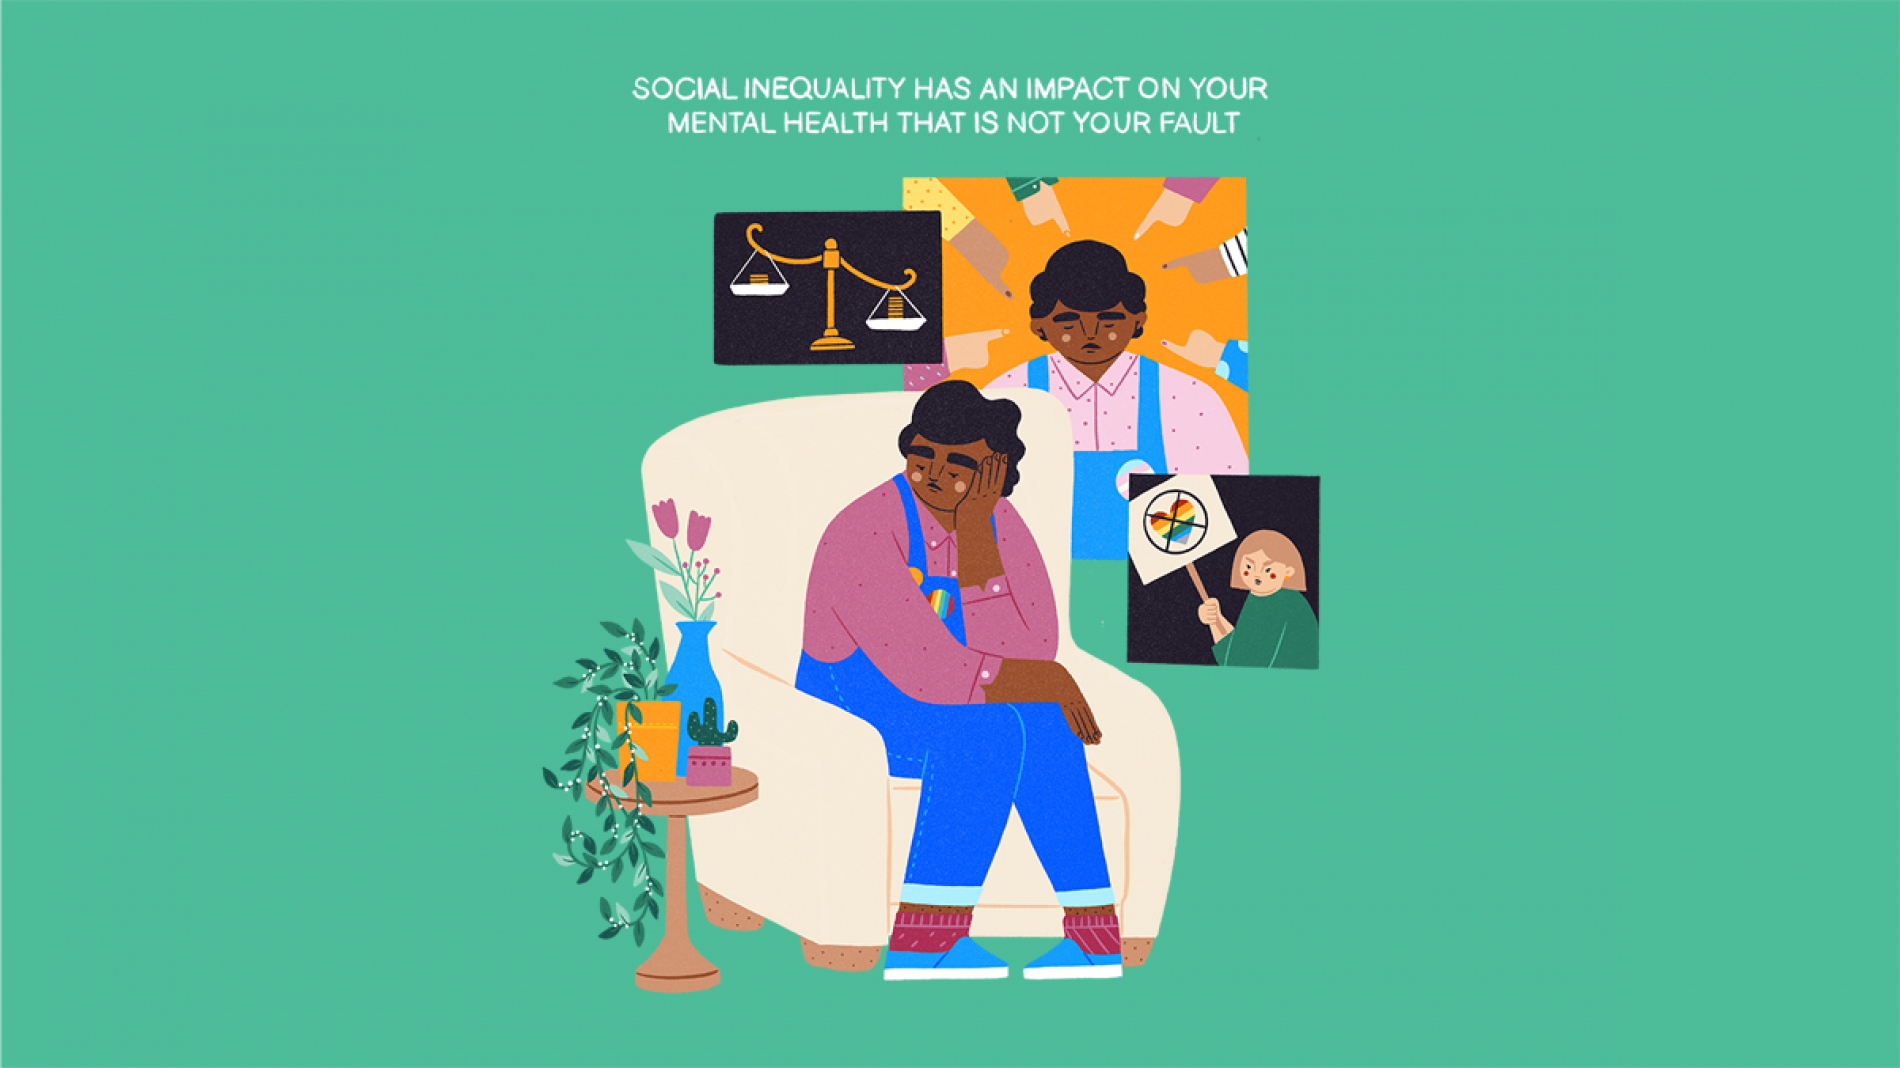 Young person experiencing social inequality mental health